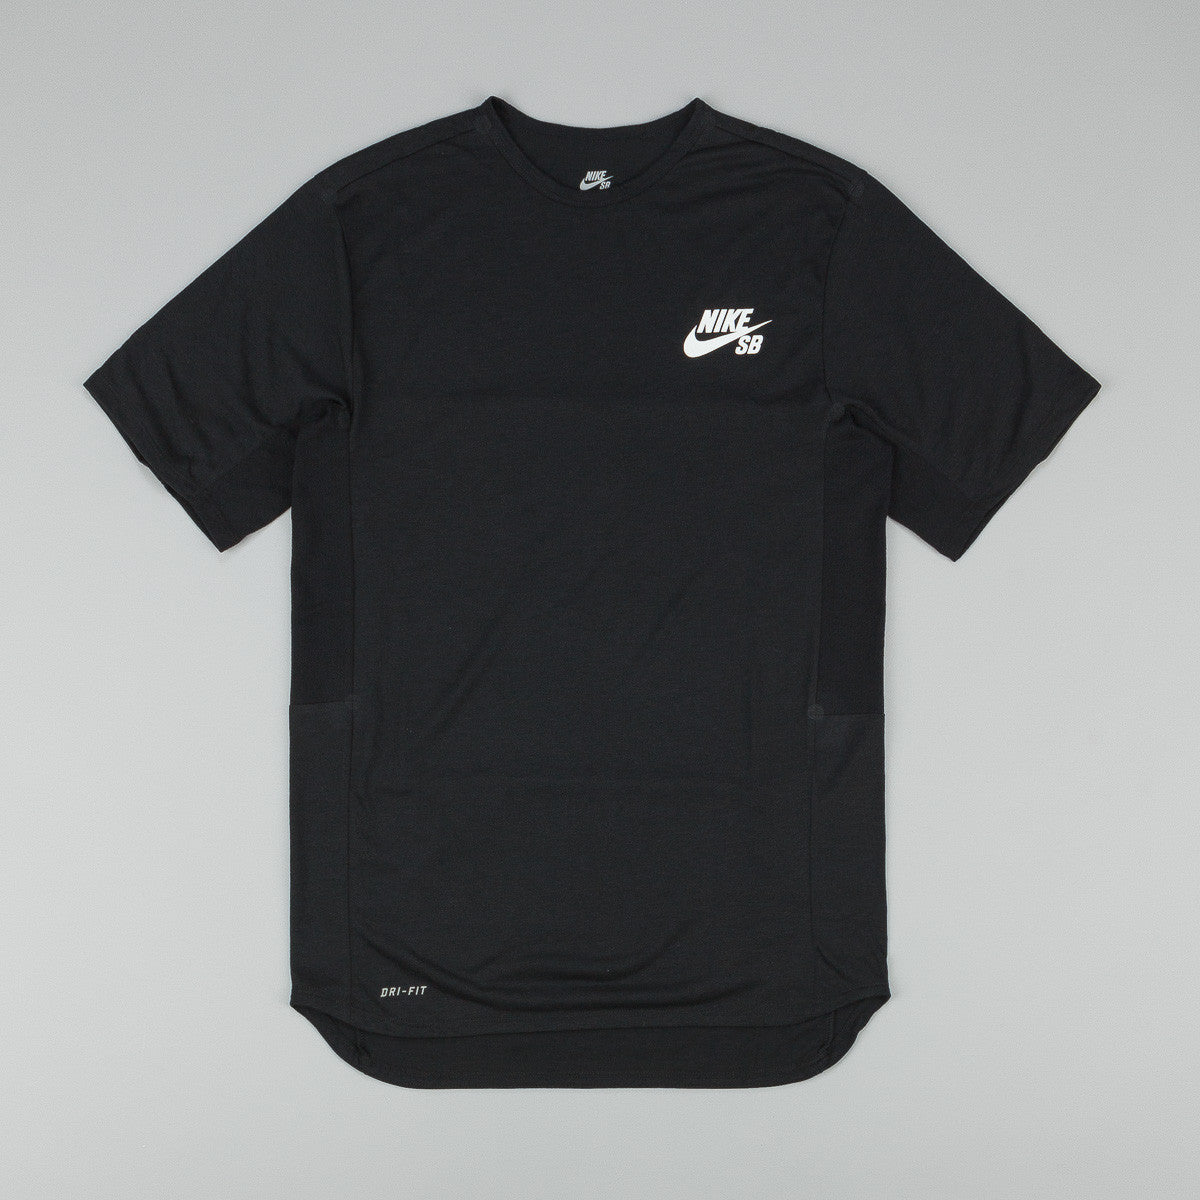 Nike SB Dri-Fit Skyline Crew T-Shirt - Black / White